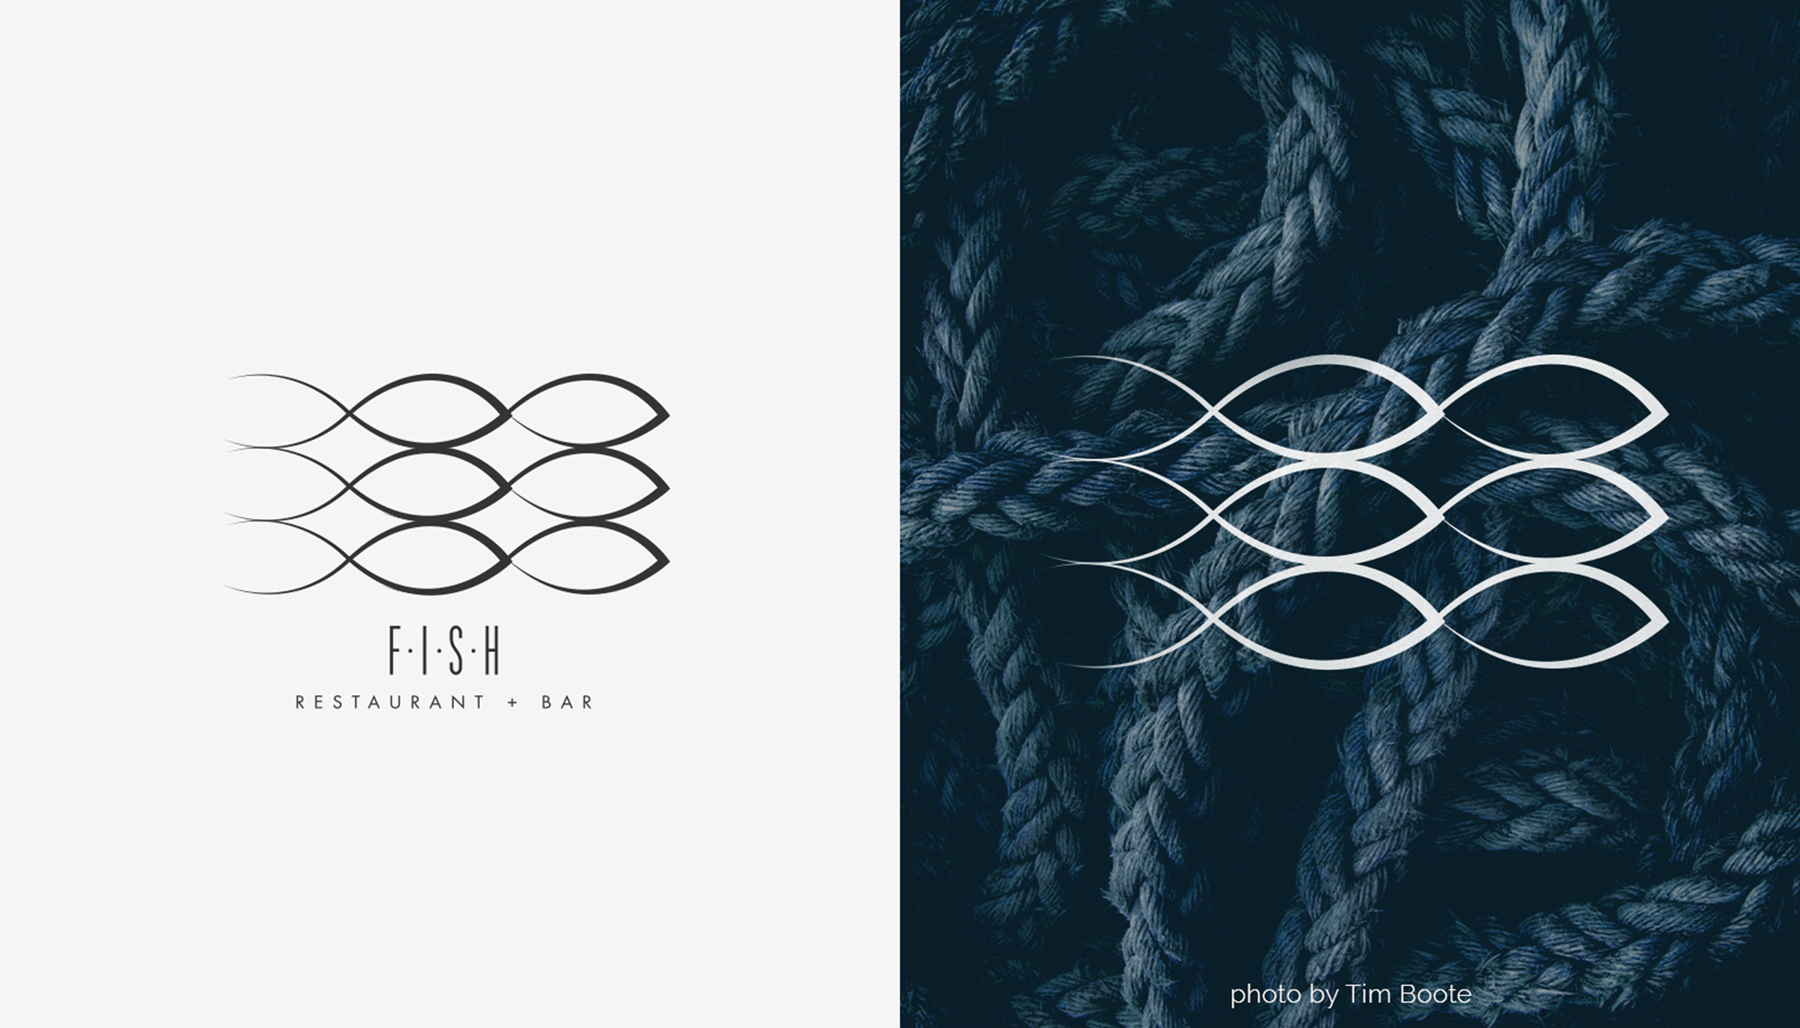 Paul_Molina_Graphic-Design_FISH_Restaurant_Logo2